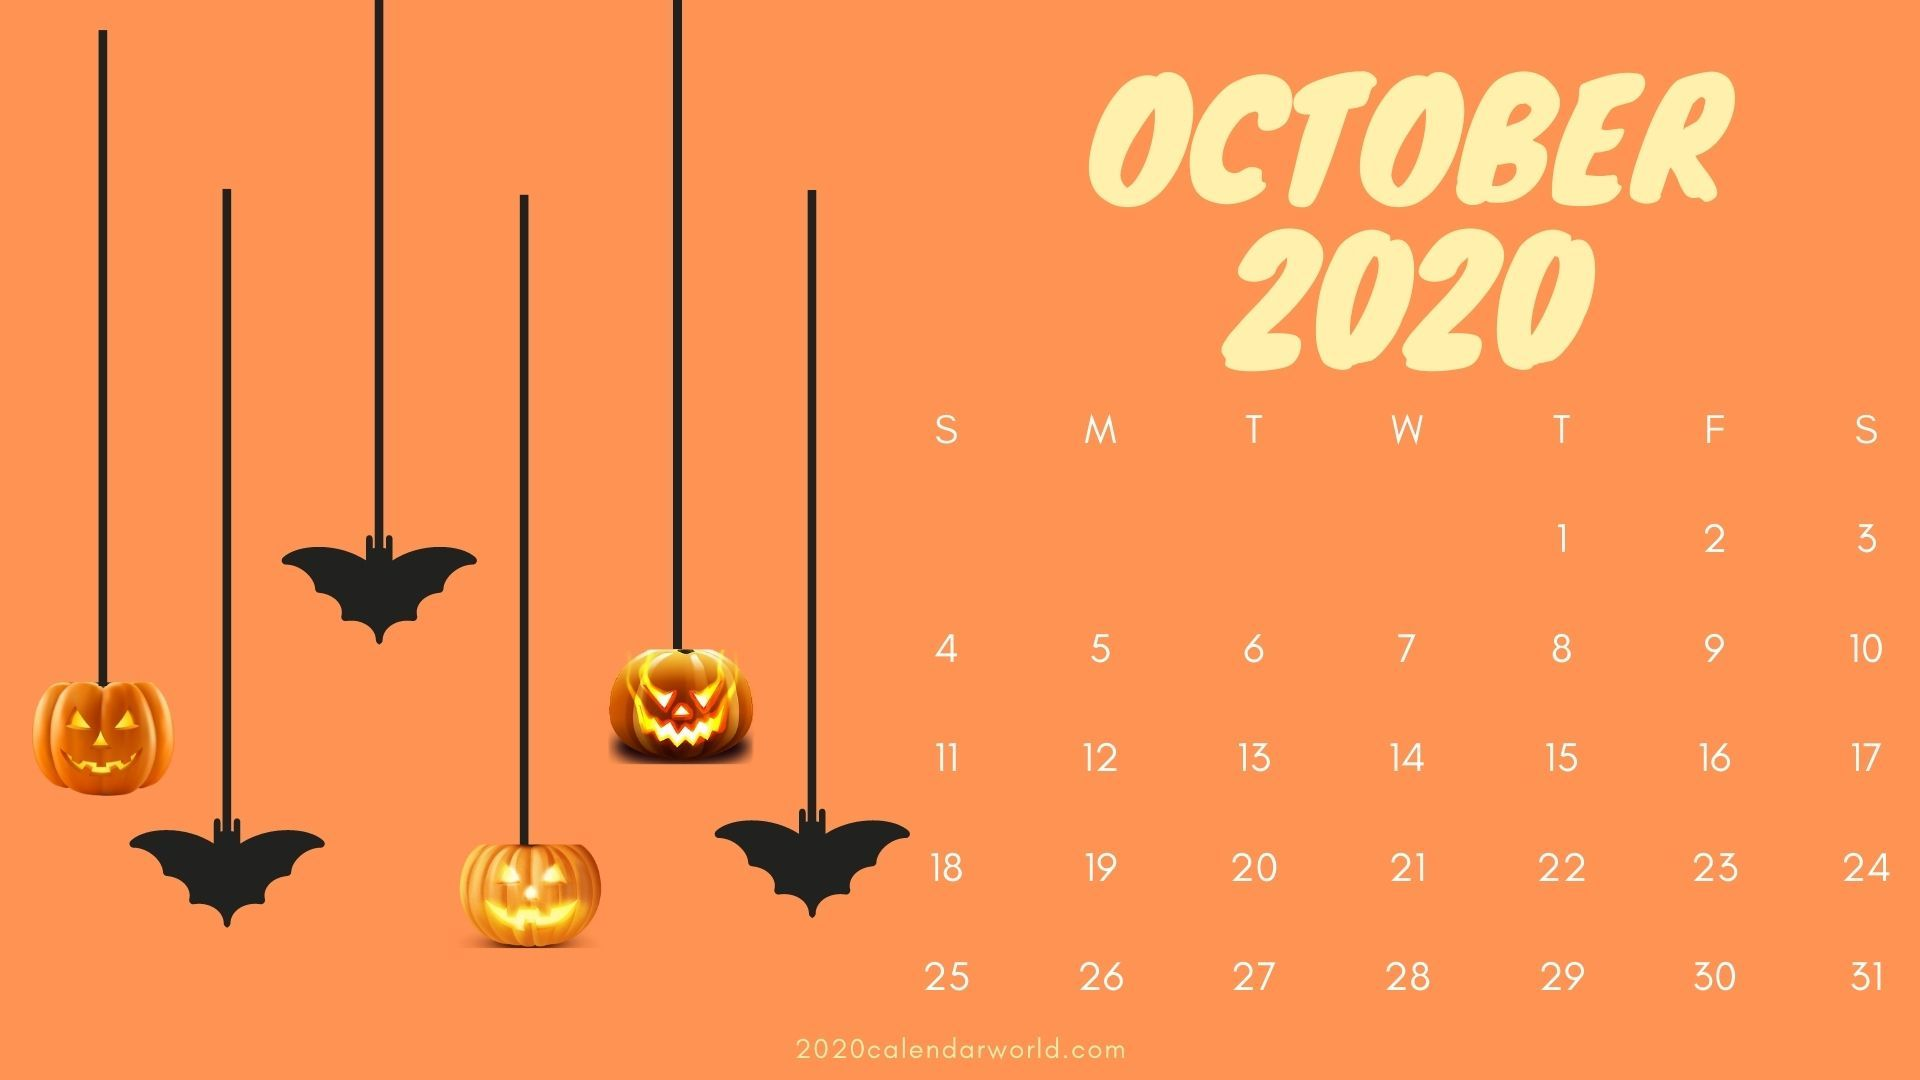 Calendar For October 2020 With Halloween Free Download In 2020 Calendar Wallpaper October Calendar Desk Calendars